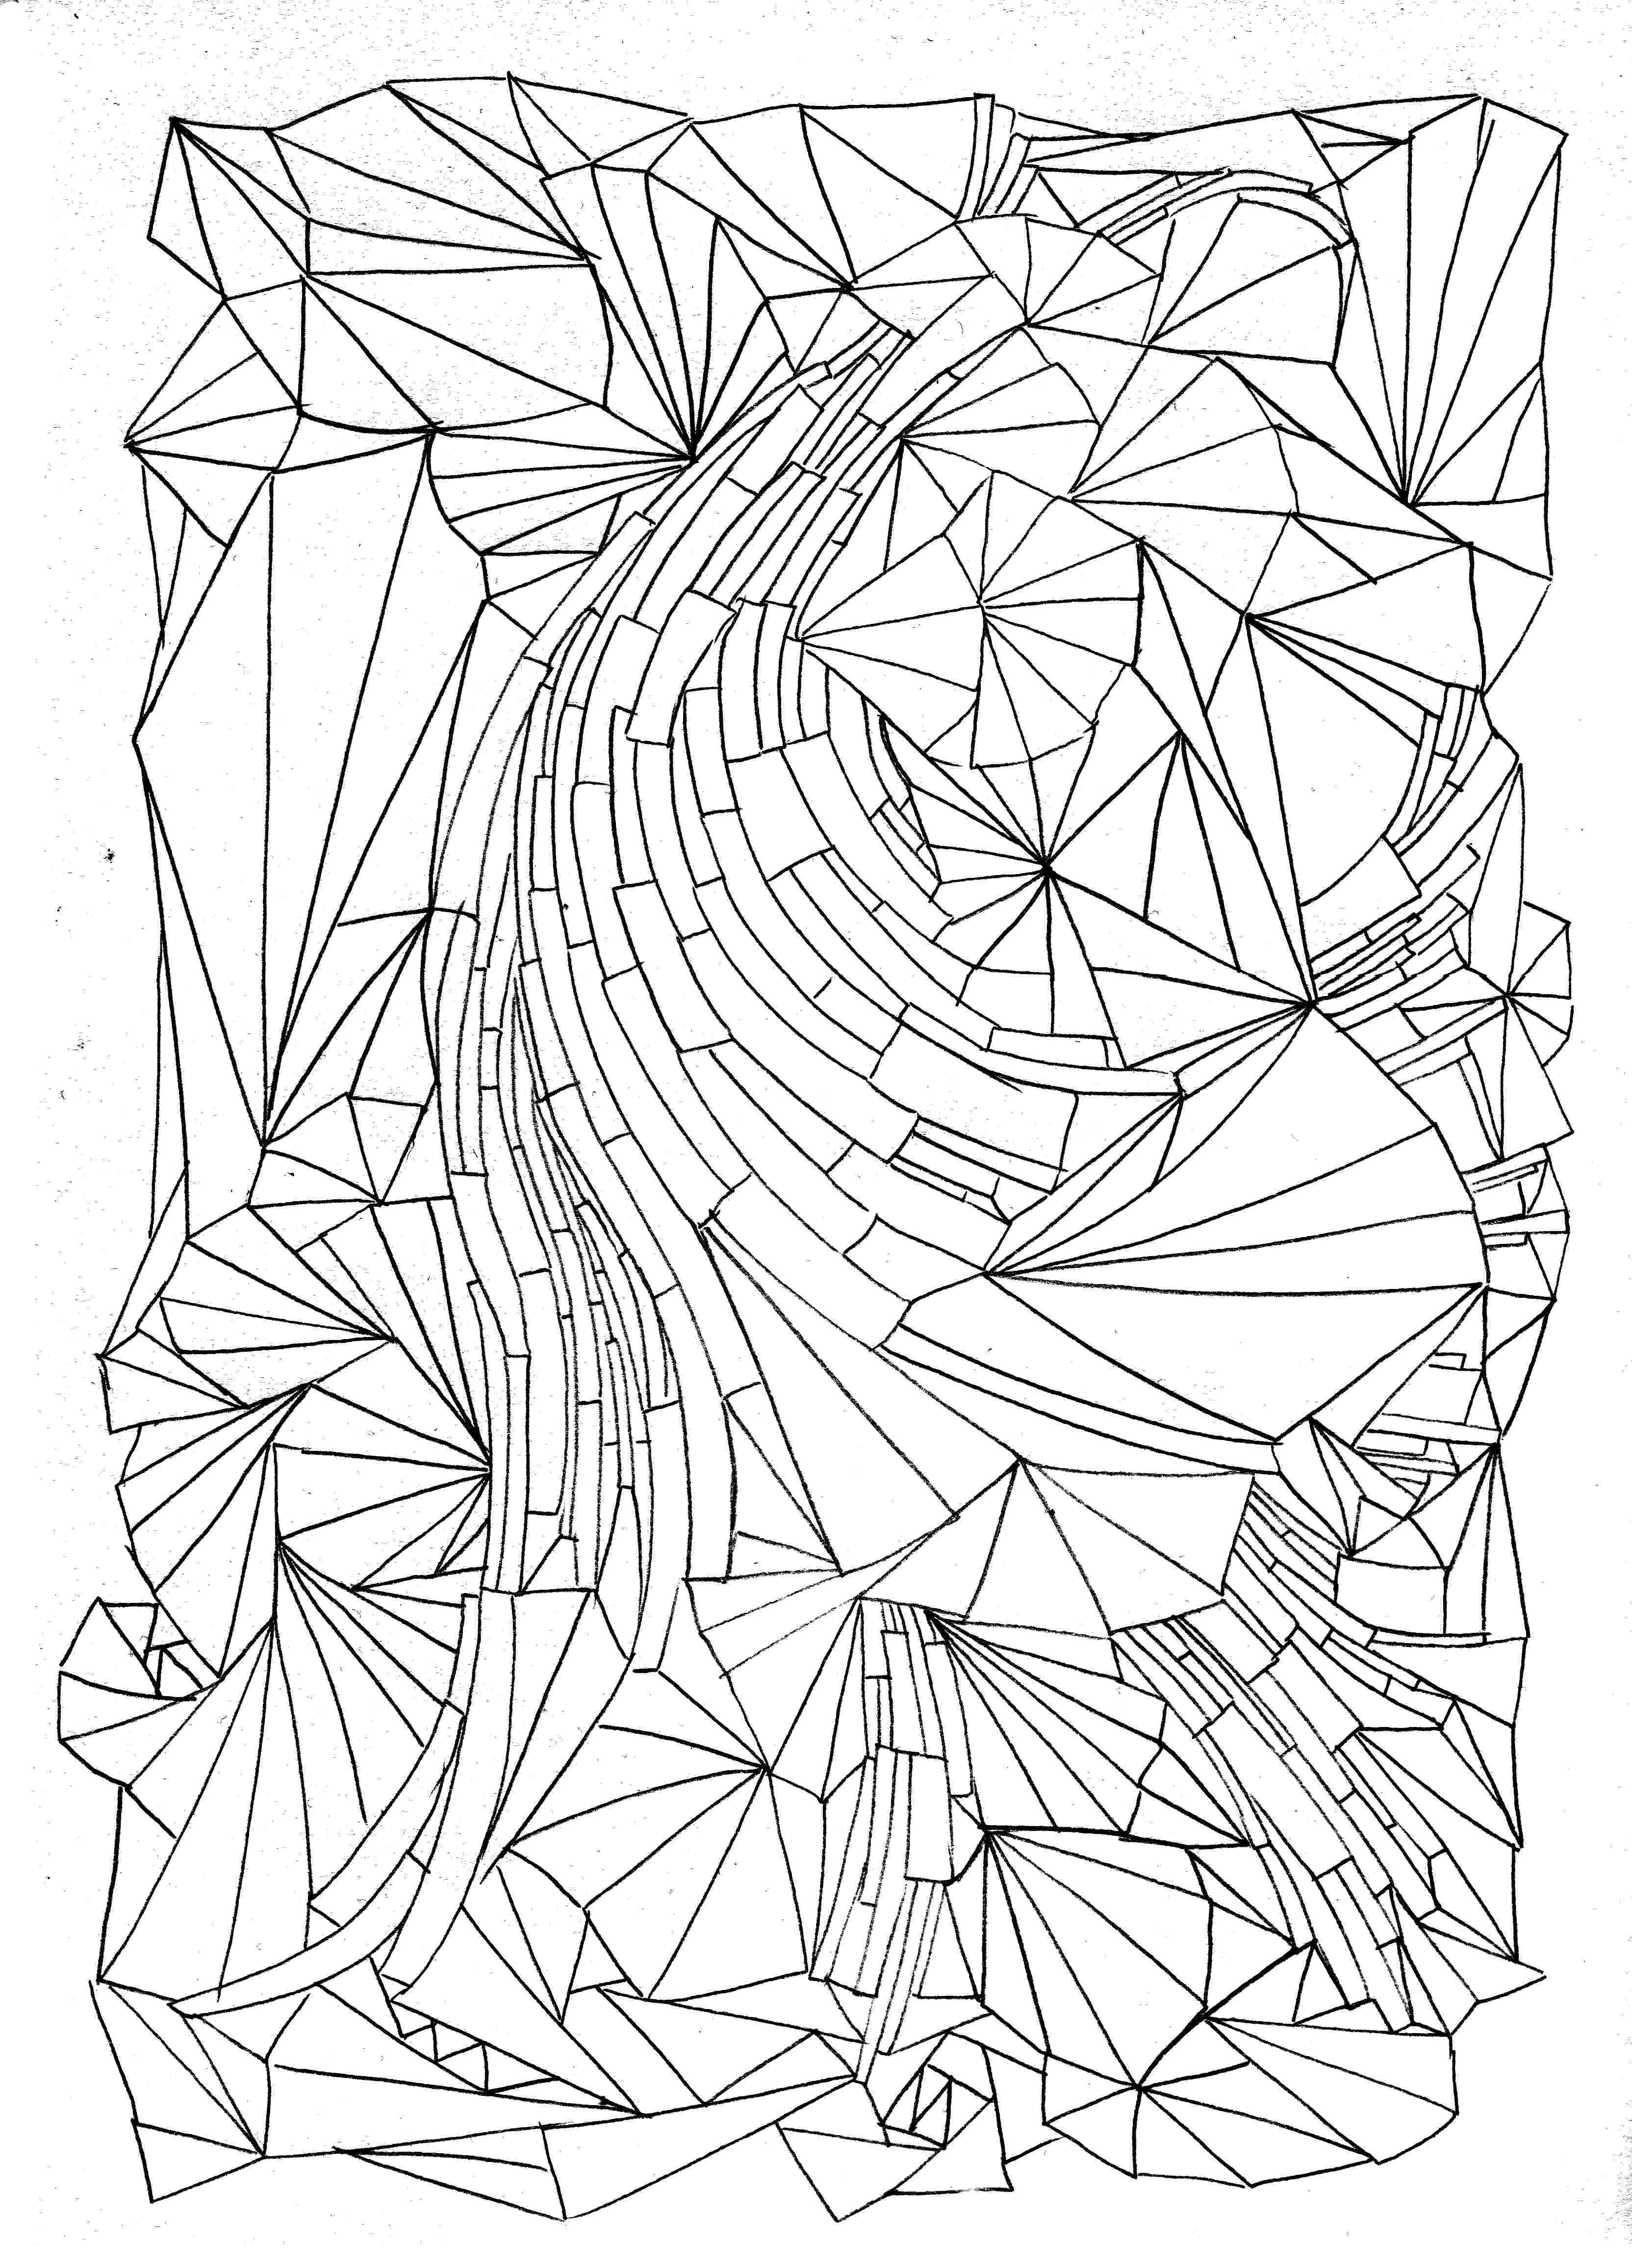 coloring patterns pages free printable geometric coloring pages for kids coloring patterns pages